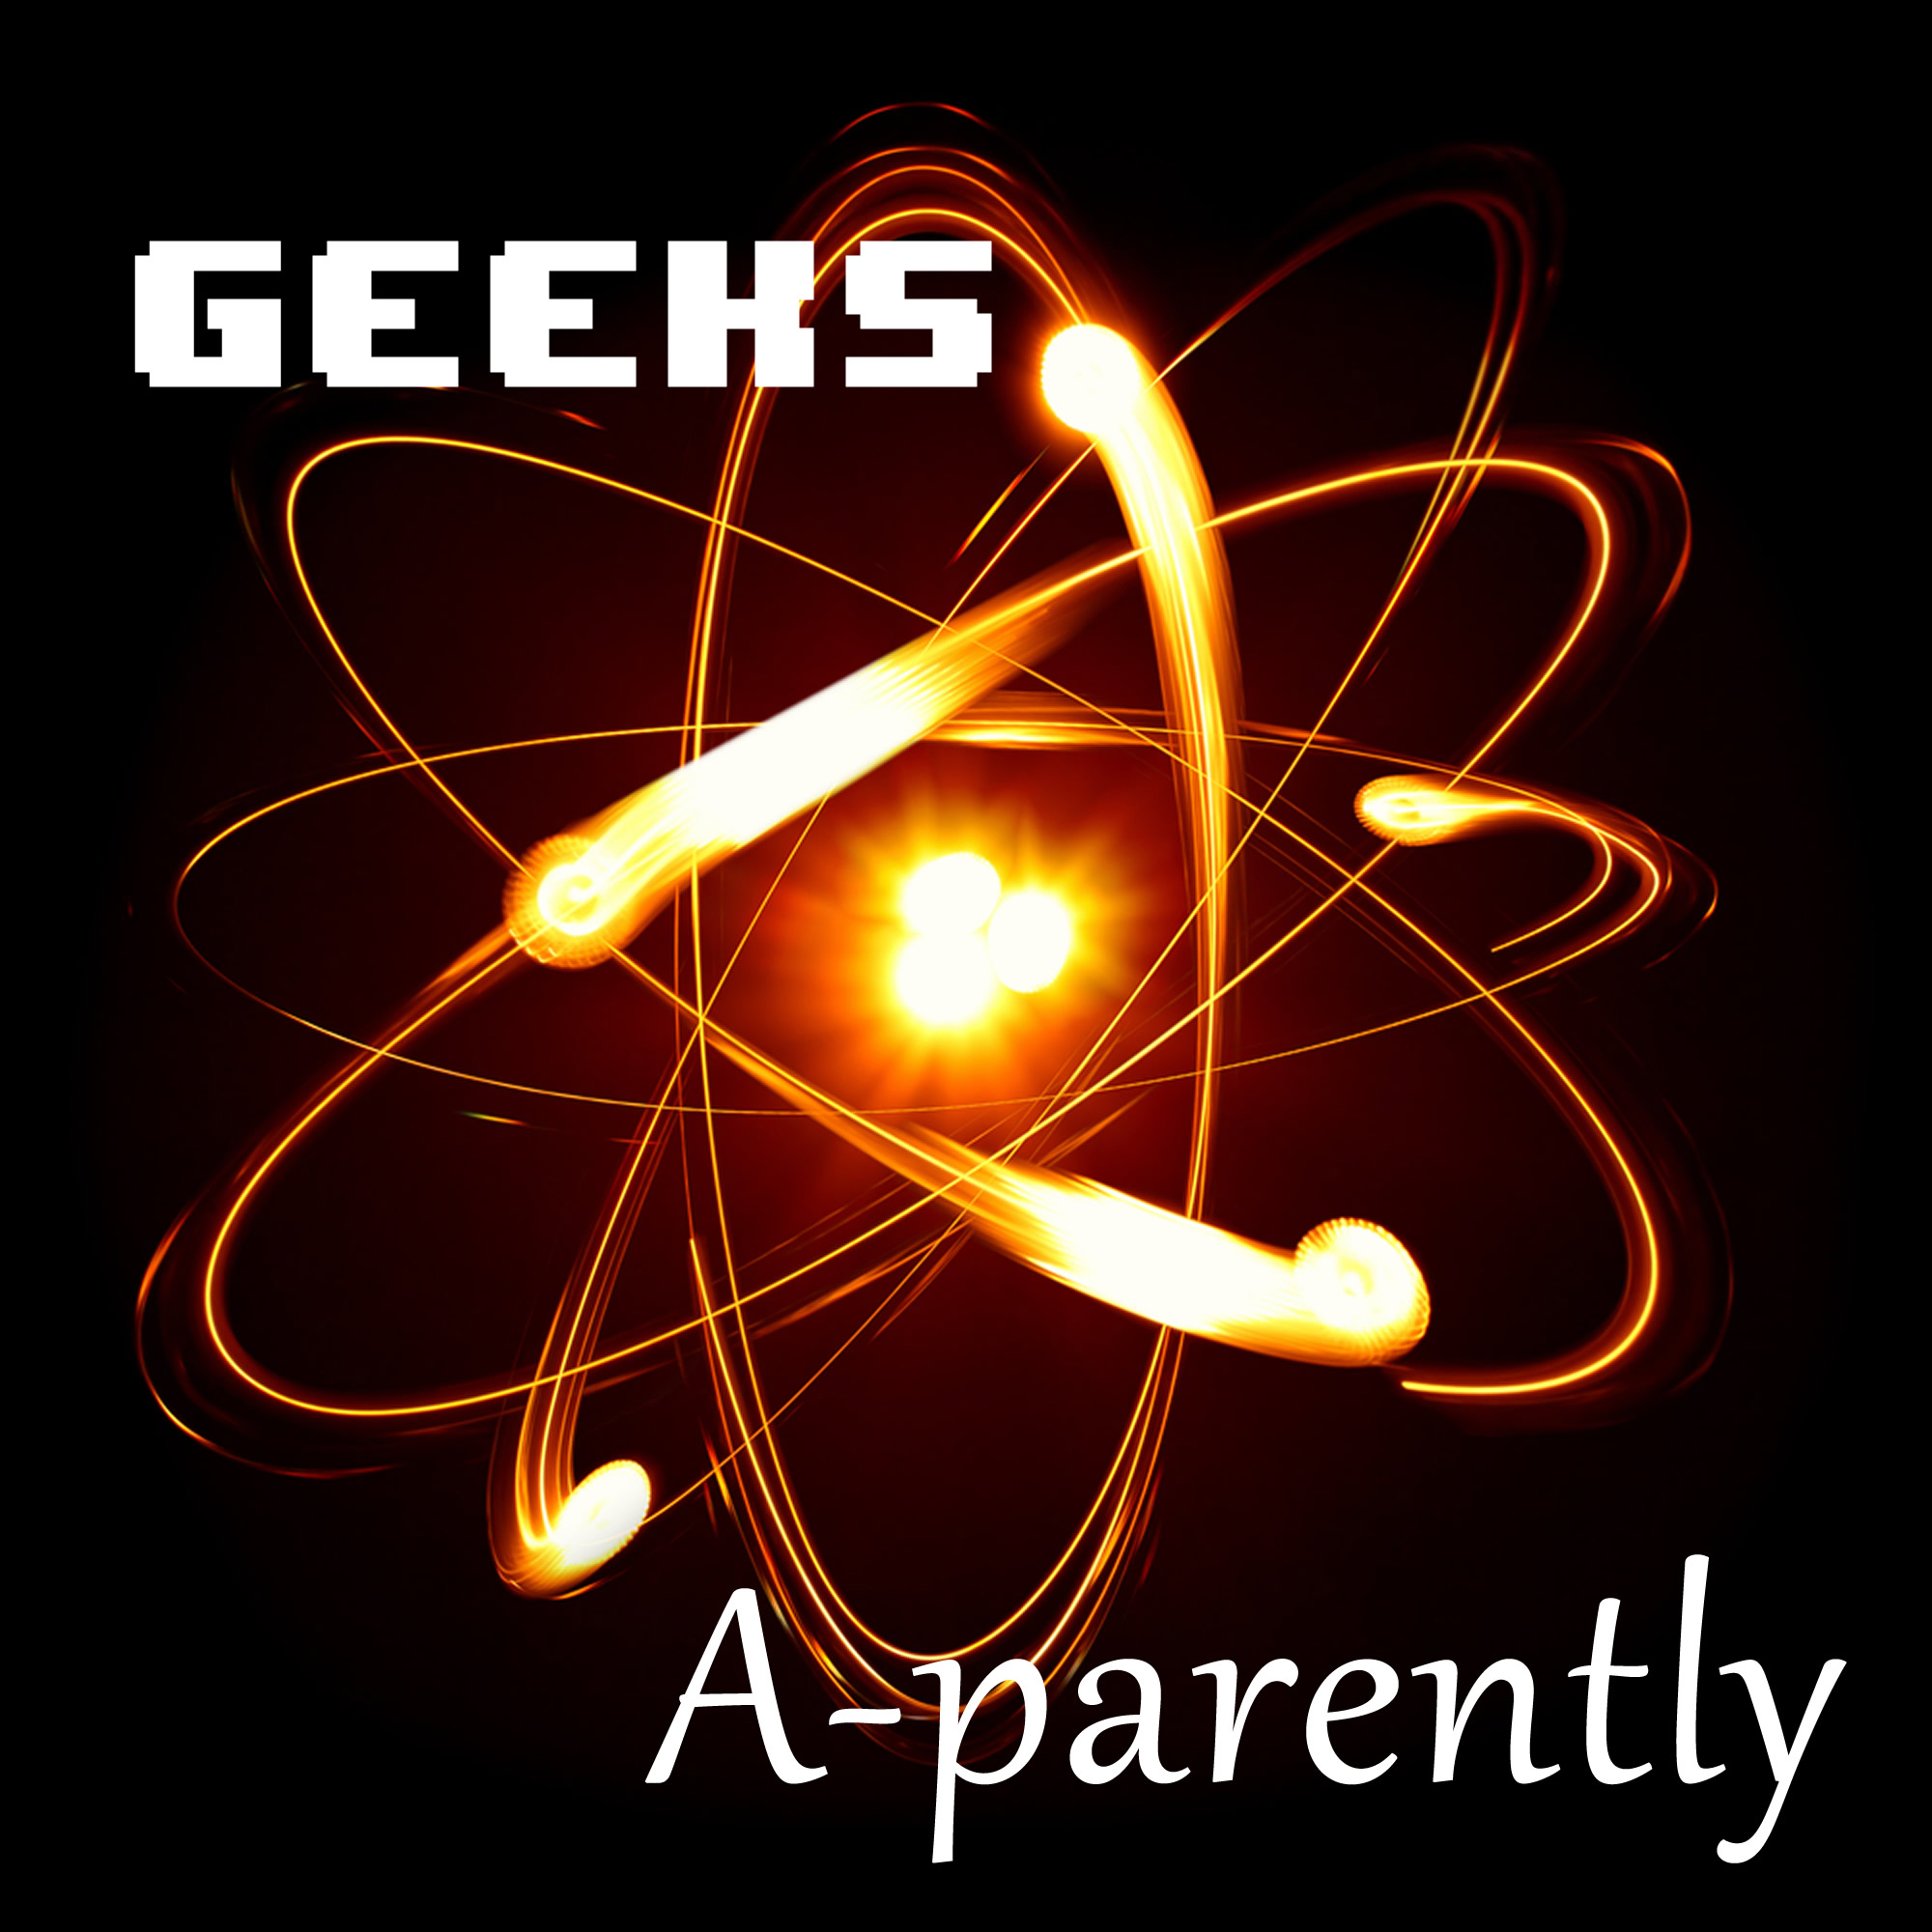 Geeks Apparently